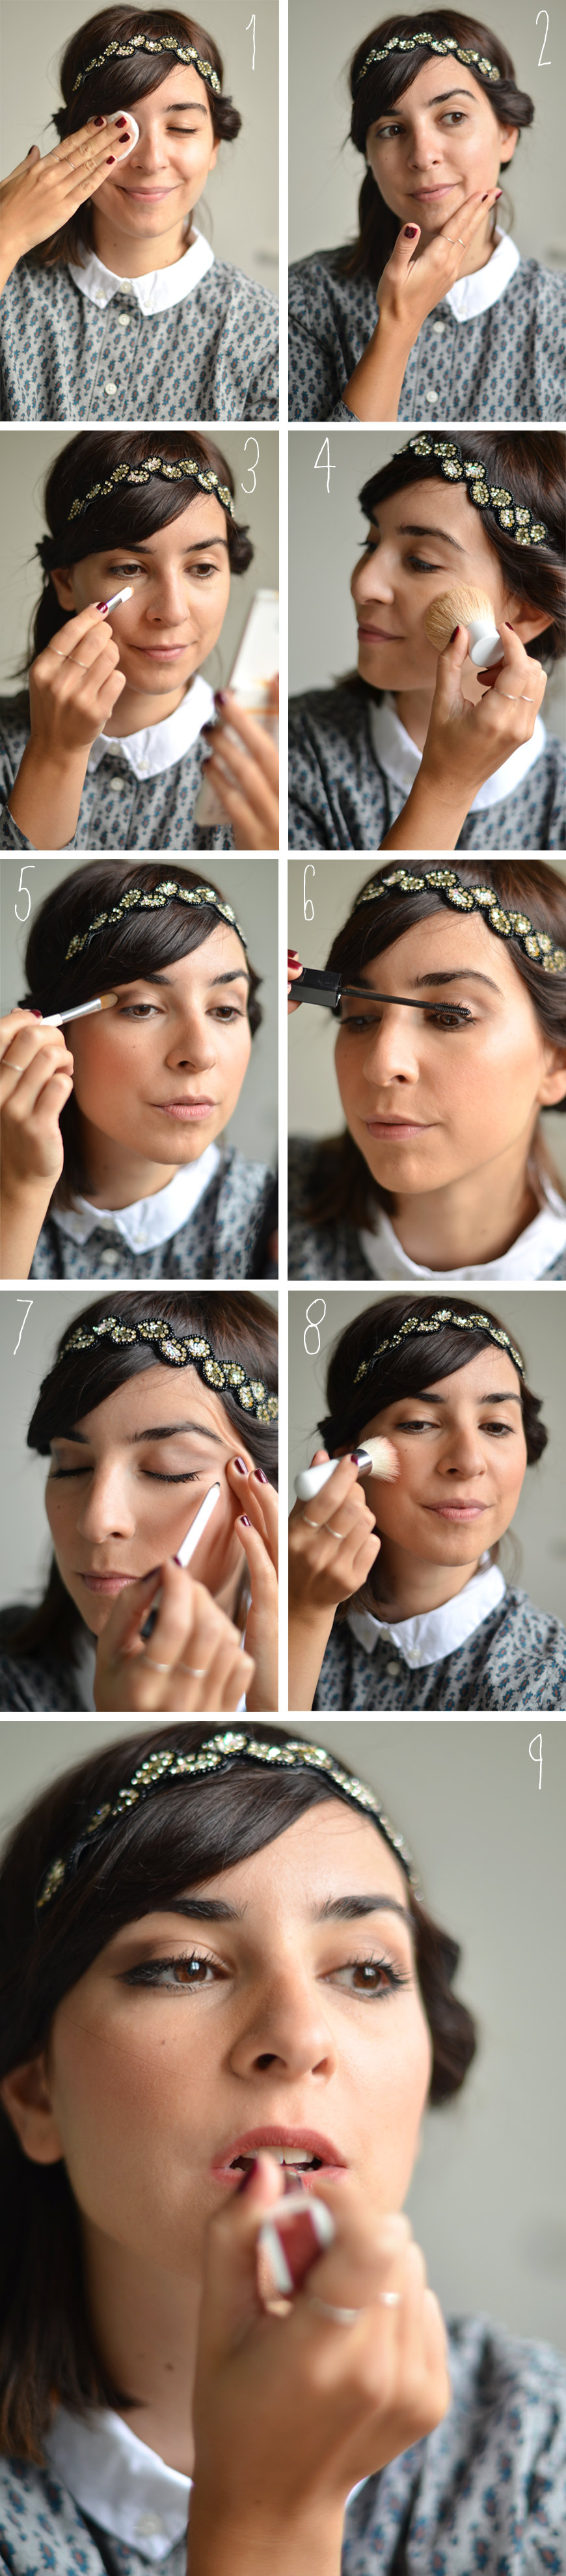 Je suis UNE natural beauty cosmetics makeup maquillage Une shooting